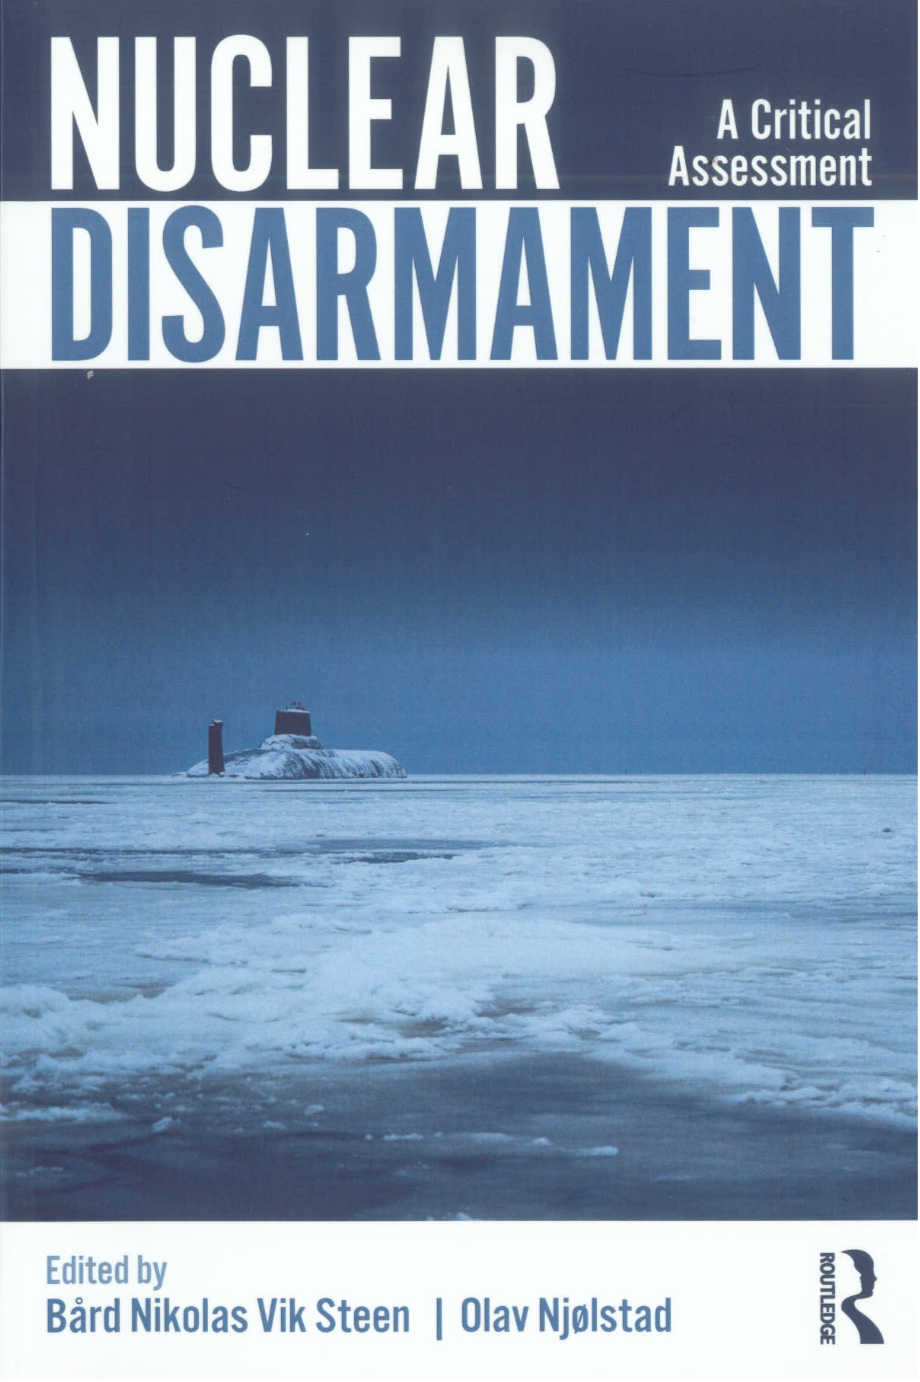 Nuclear Disarmerment - A Critcal Assessment